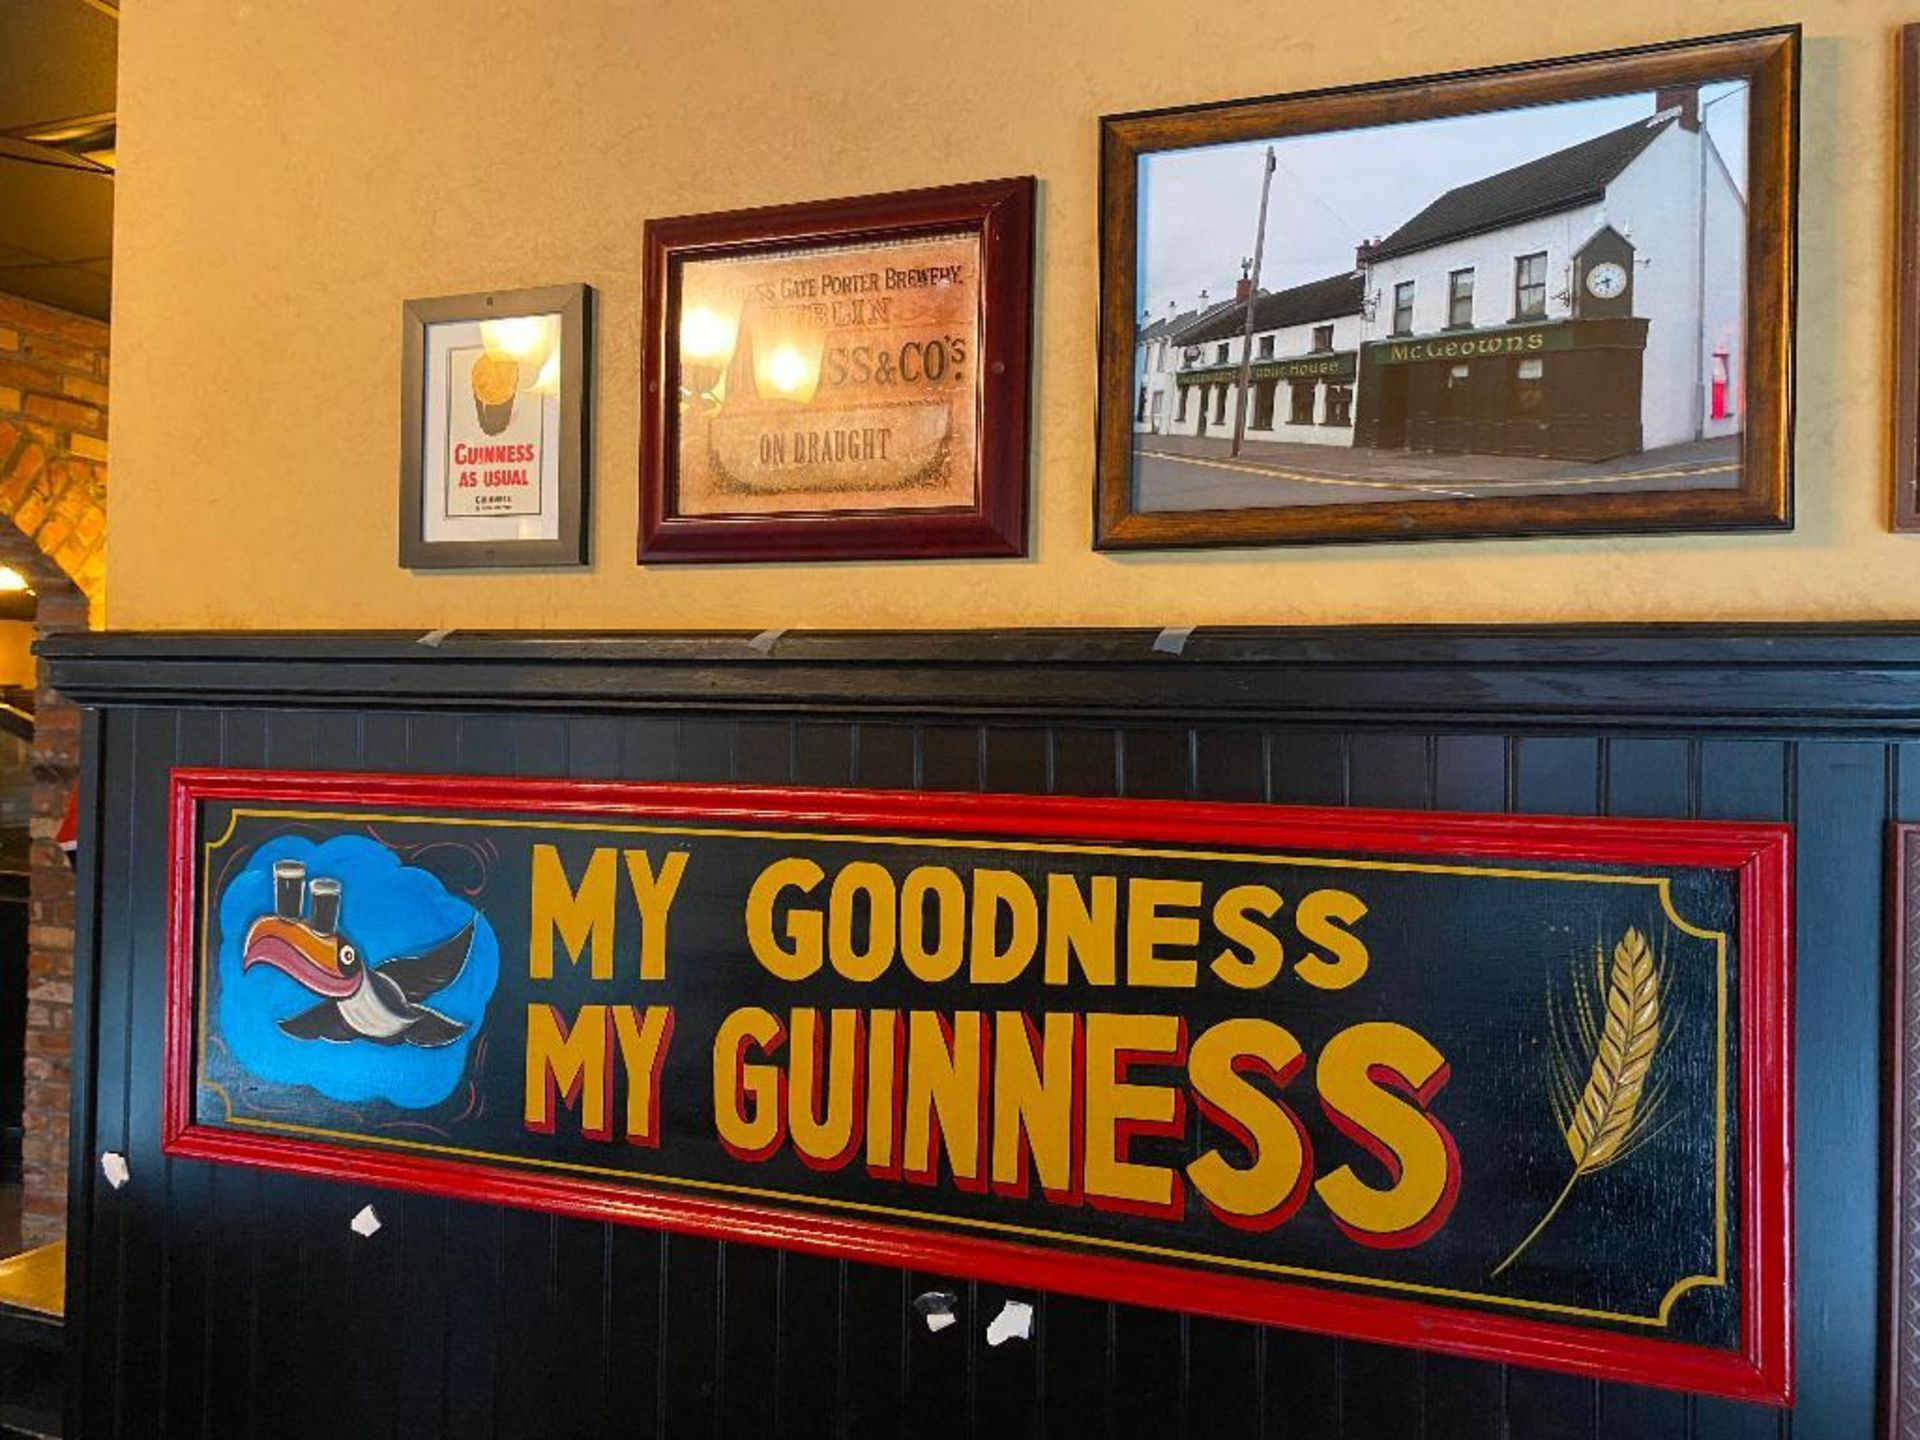 LOT OF (7) FRAMED MEMORABILIA PHOTOS & (2) WOODEN GUINNESS PLAQUES - NOTE REQUIRES REMOVAL FROM WALL - Image 5 of 5